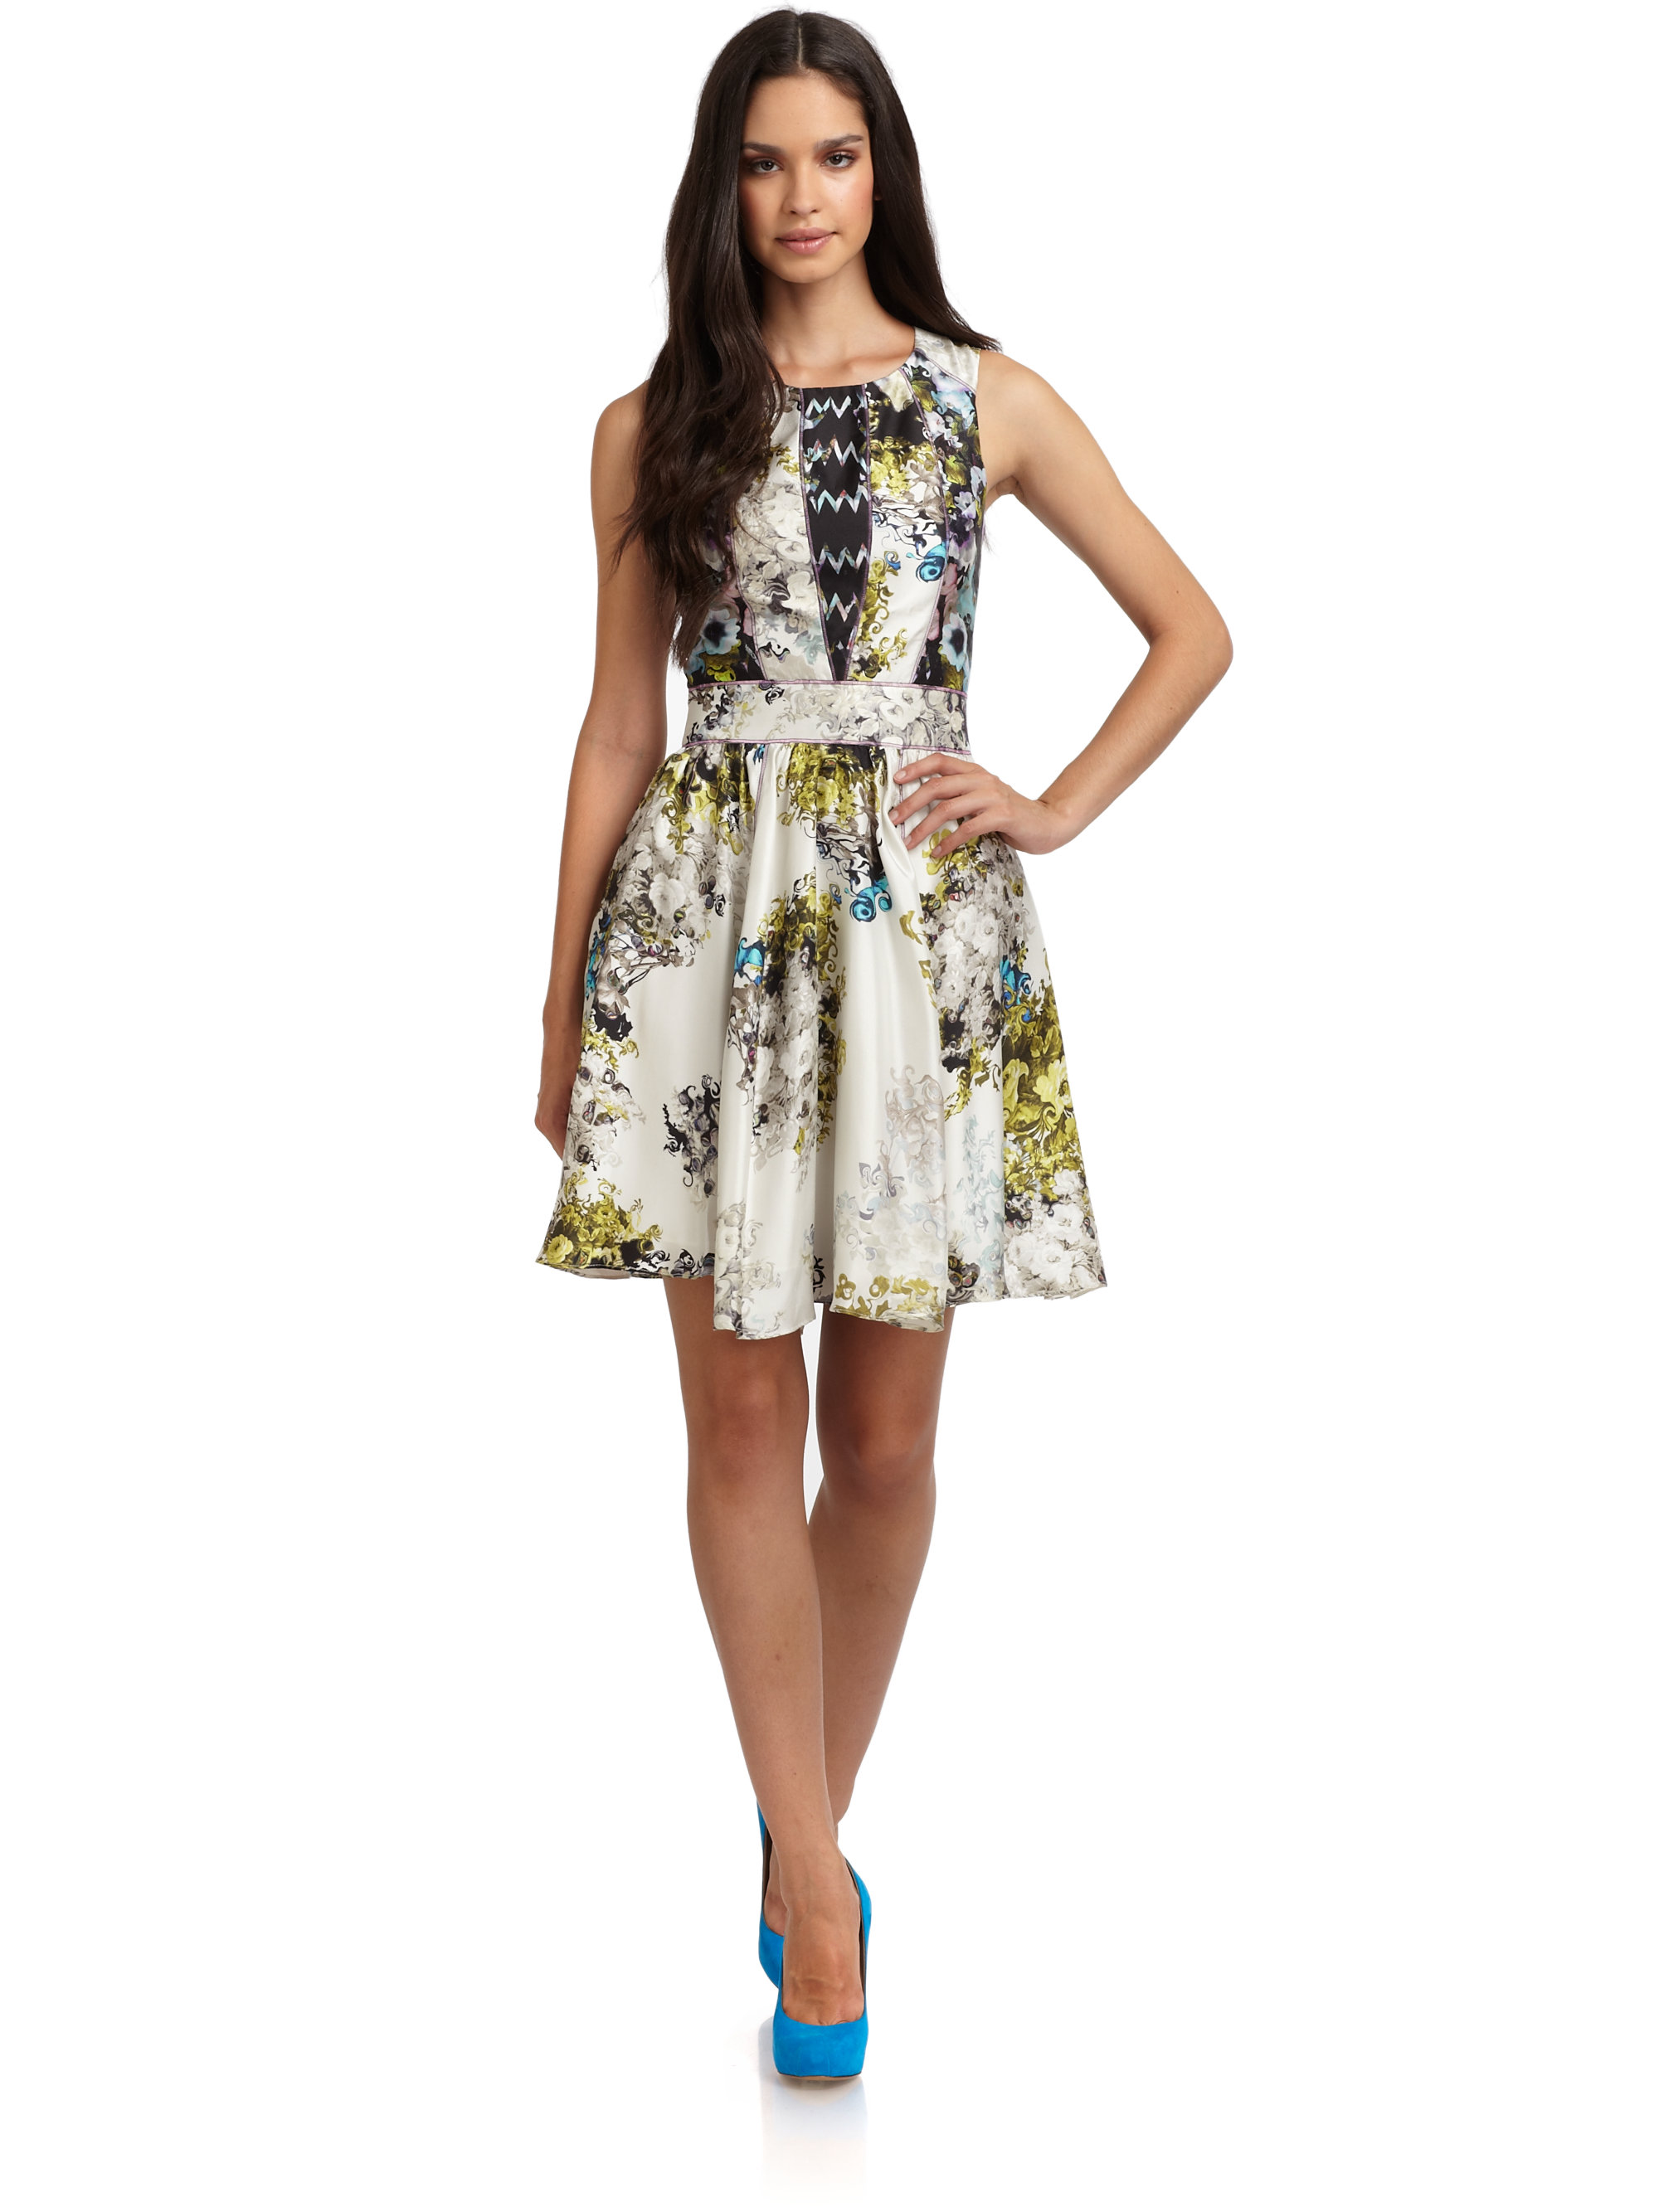 Lyst - Cynthia Rowley Silk Satin Abstract Floral Dress 603d3aec0